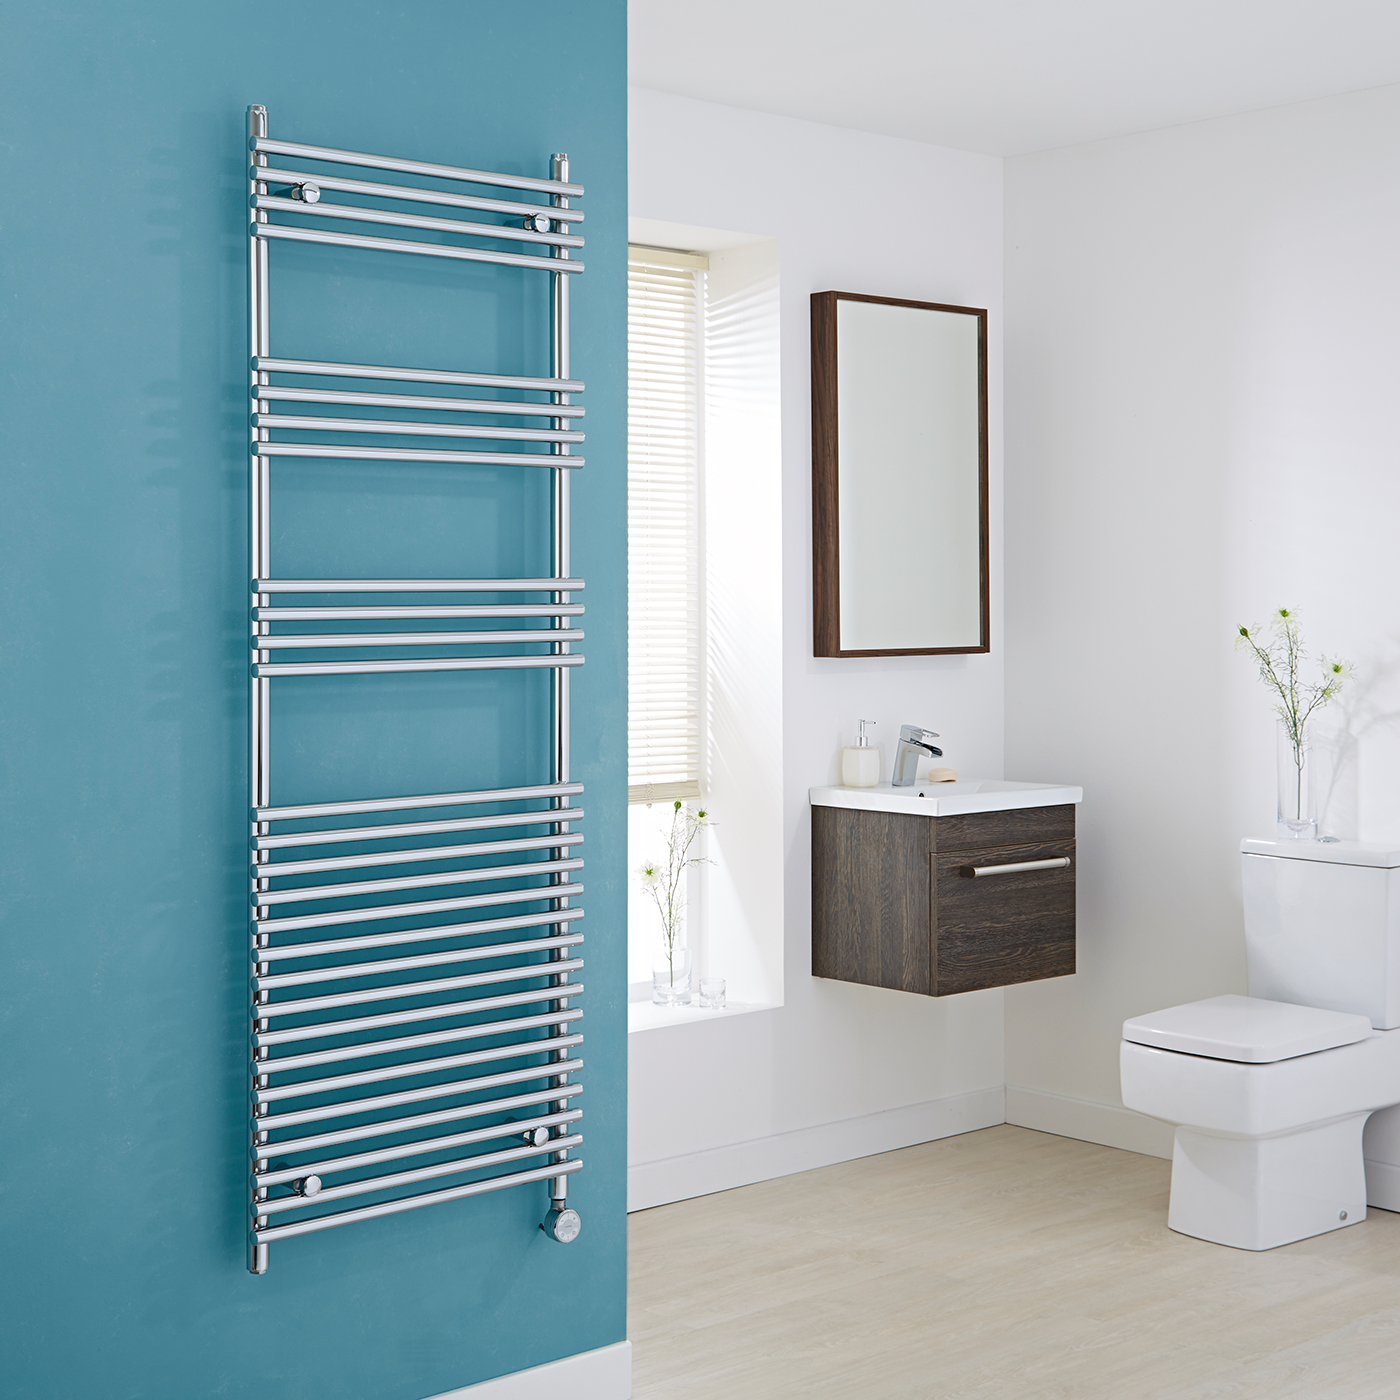 Kudox Electric - Flat Chrome Bar on Bar Towel Rail 1650mm x 600mm